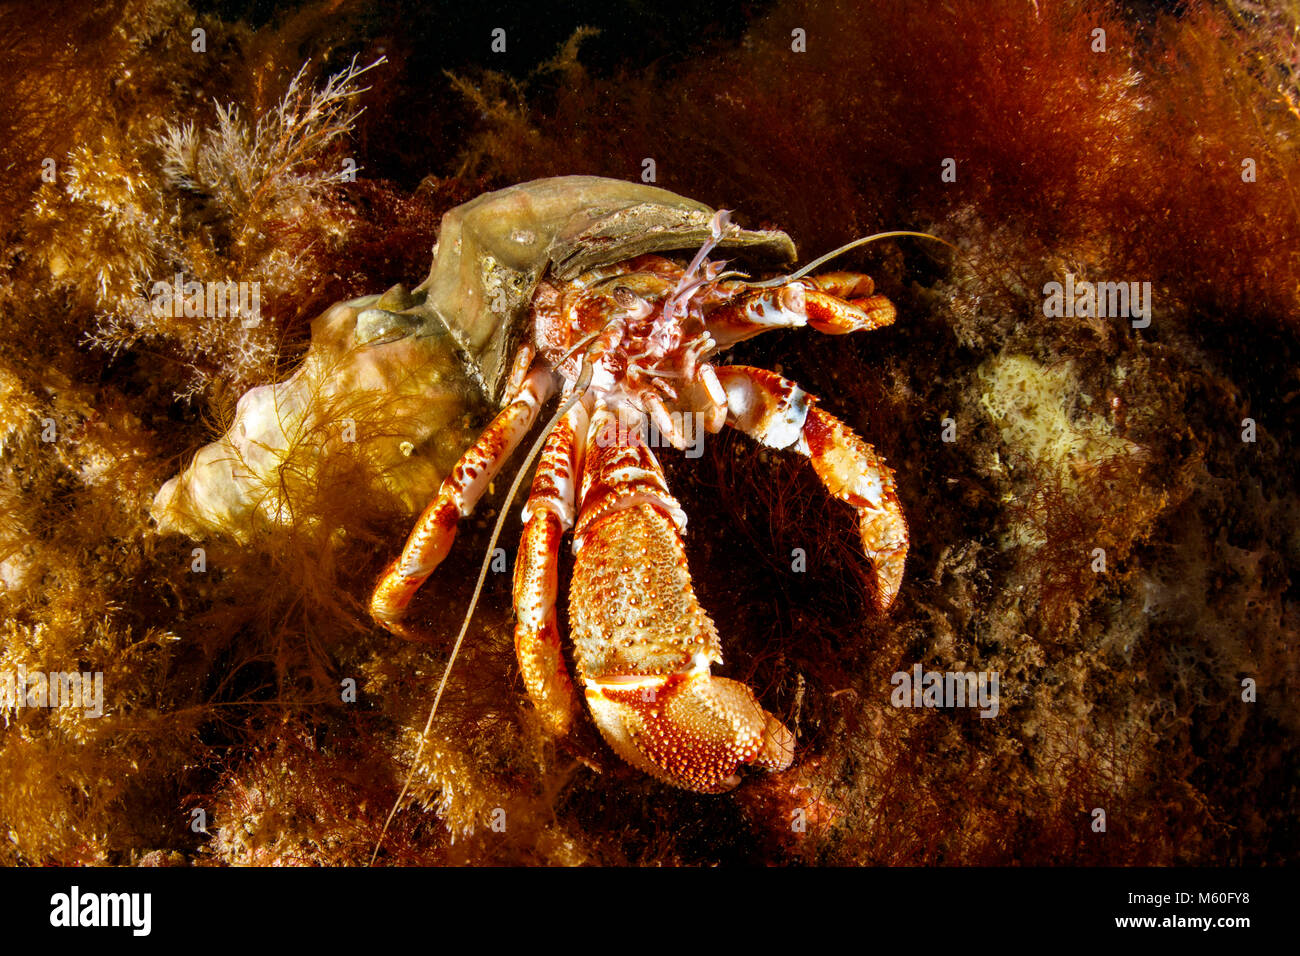 Common Hermit Crab, North Atlantic Ocean, Iceland - Stock Image